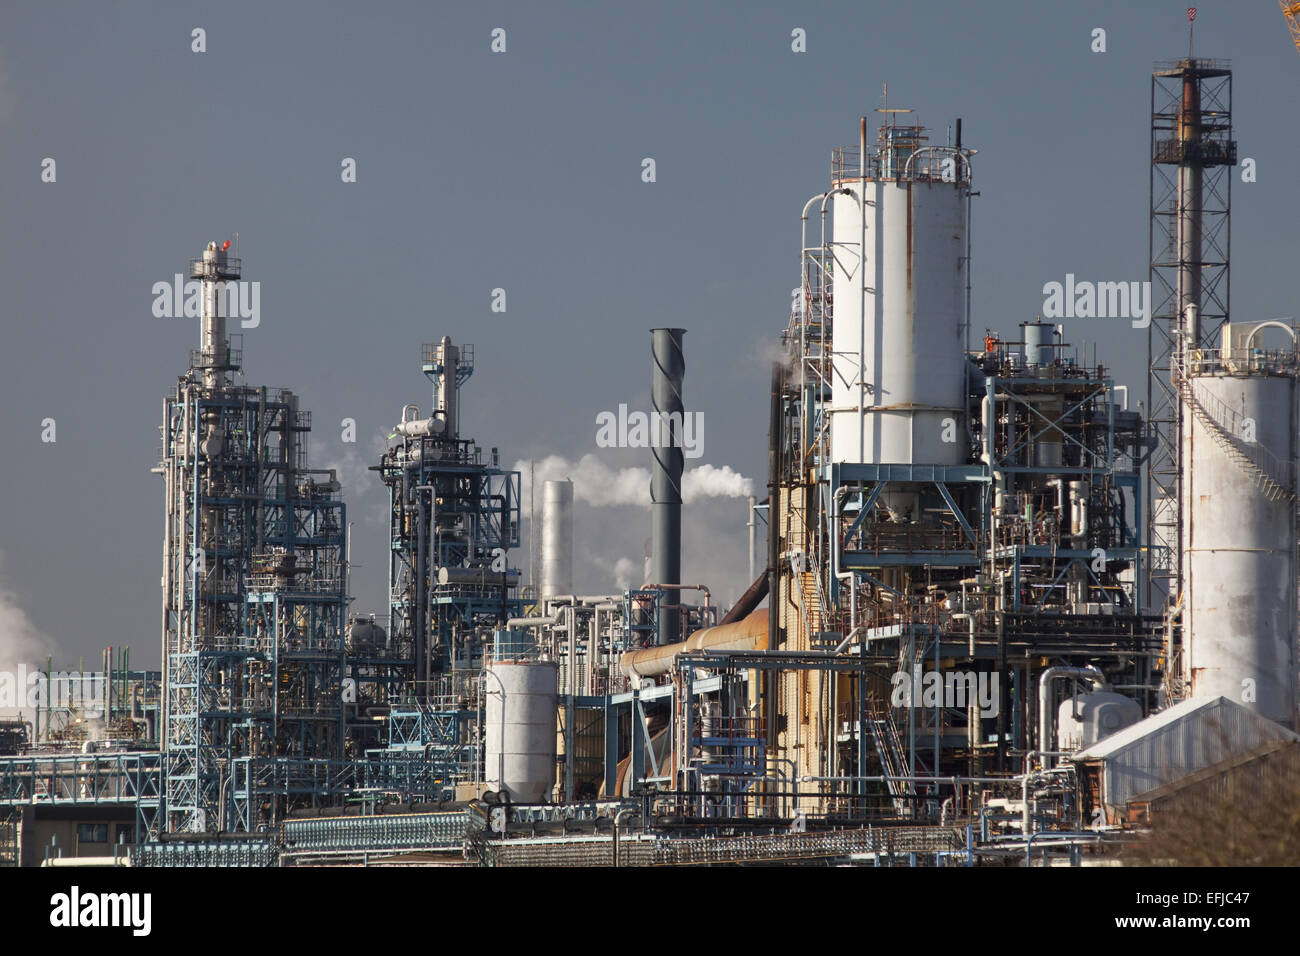 Chemical works at Runcorn - Stock Image